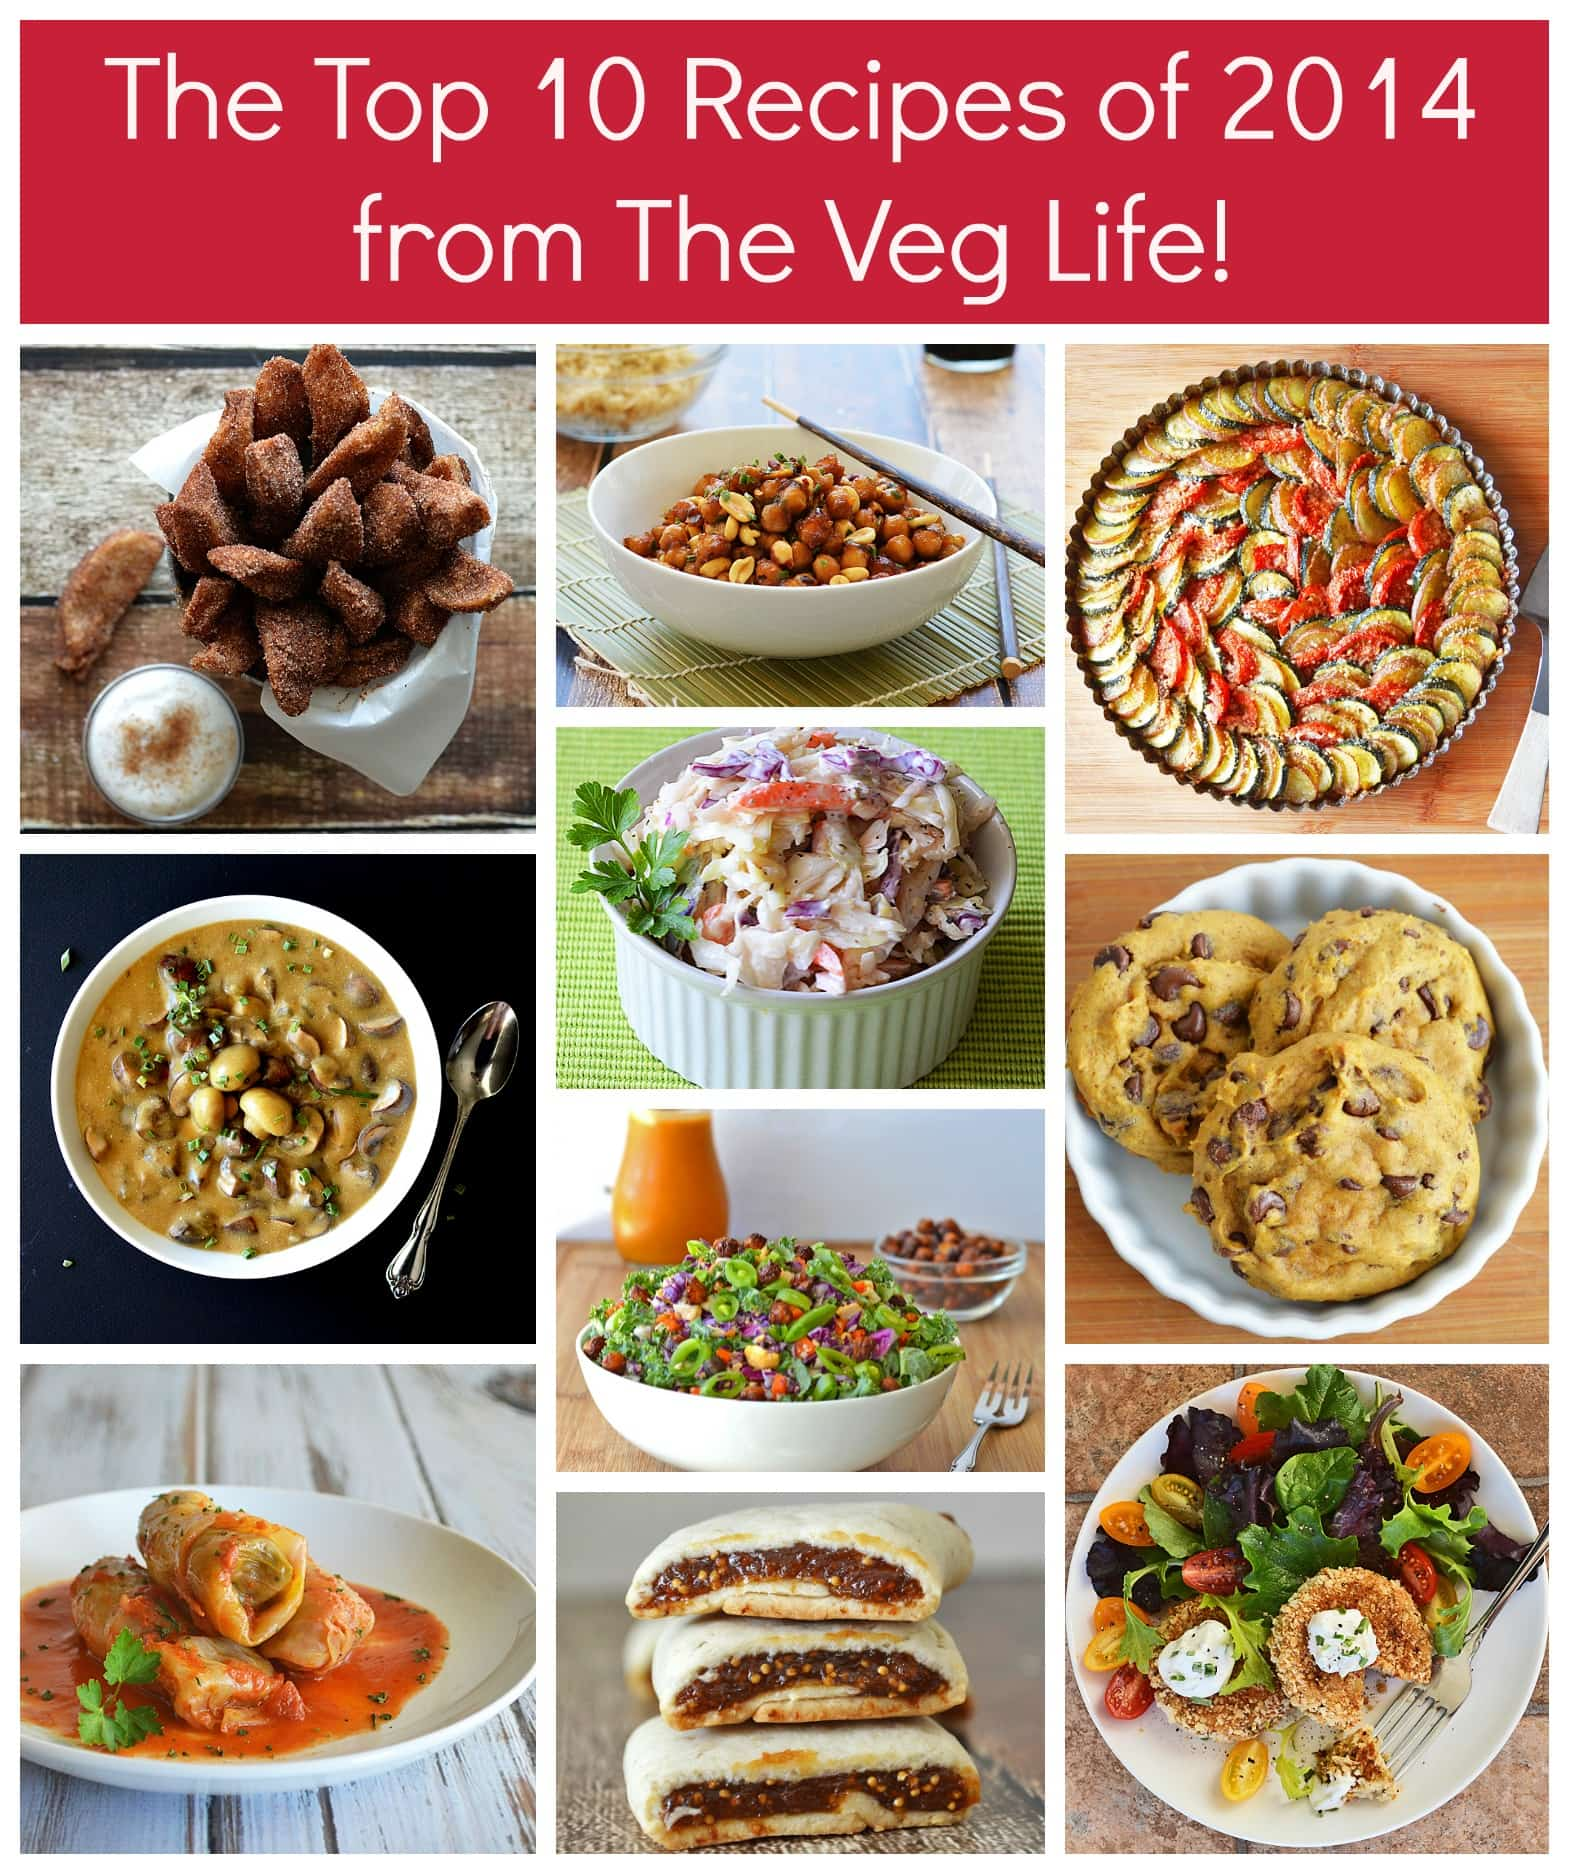 The Top 10 Recipes of 2014!